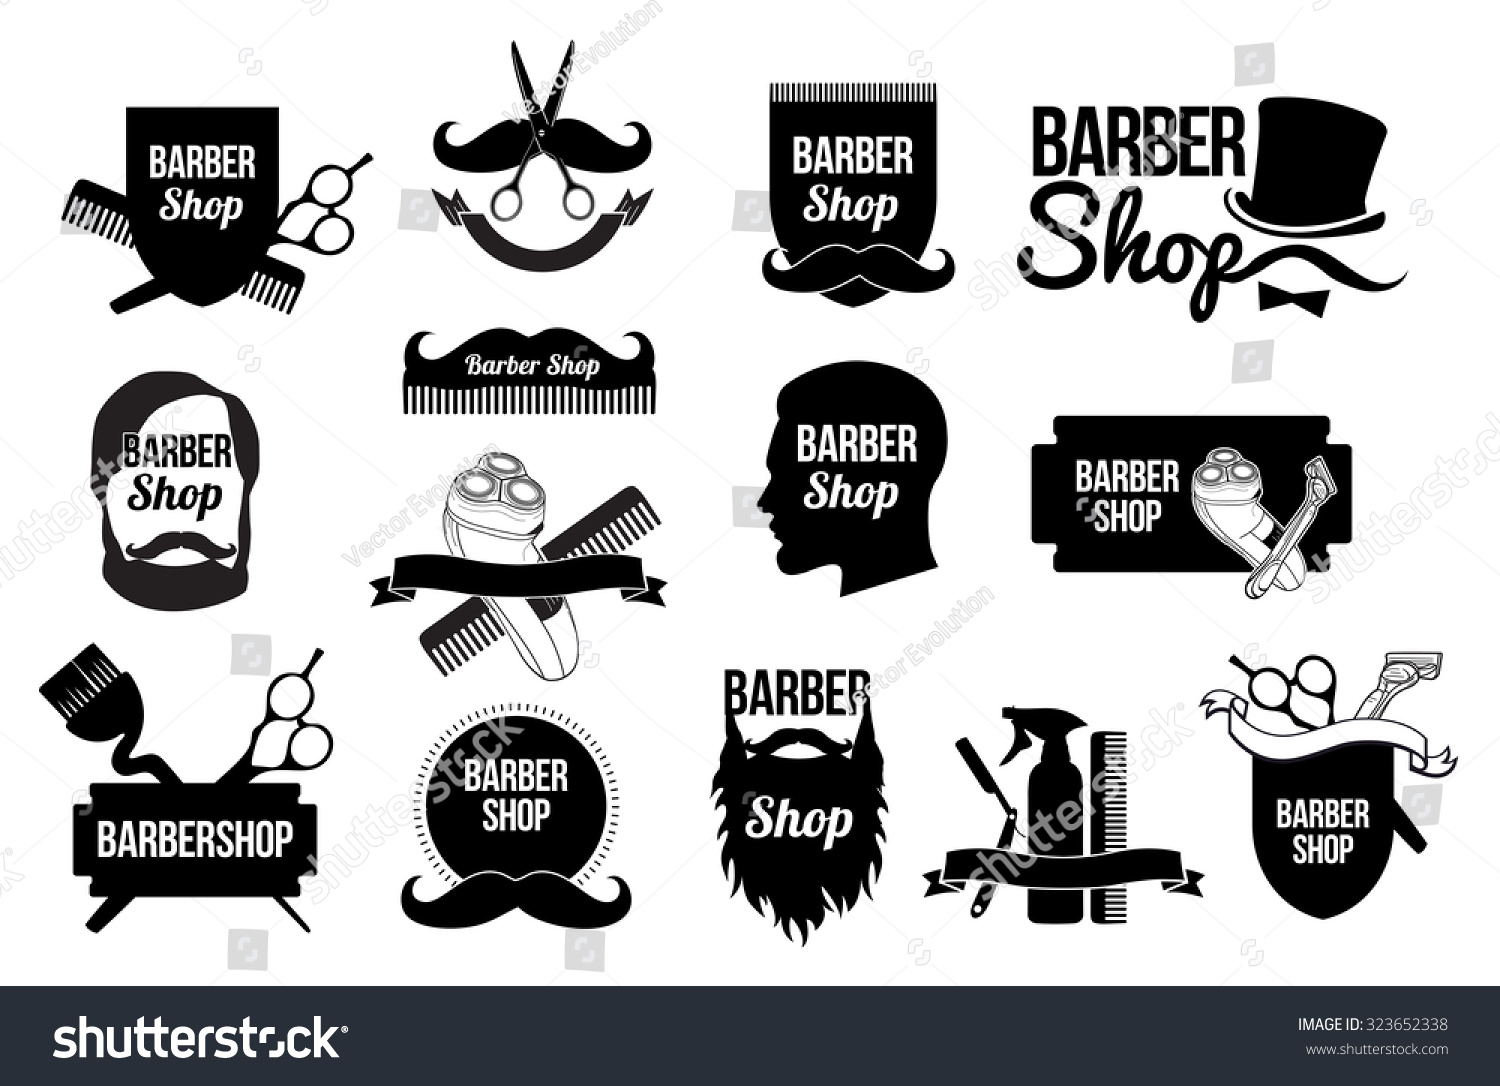 mens haircut logobarber shop logo design stock vector